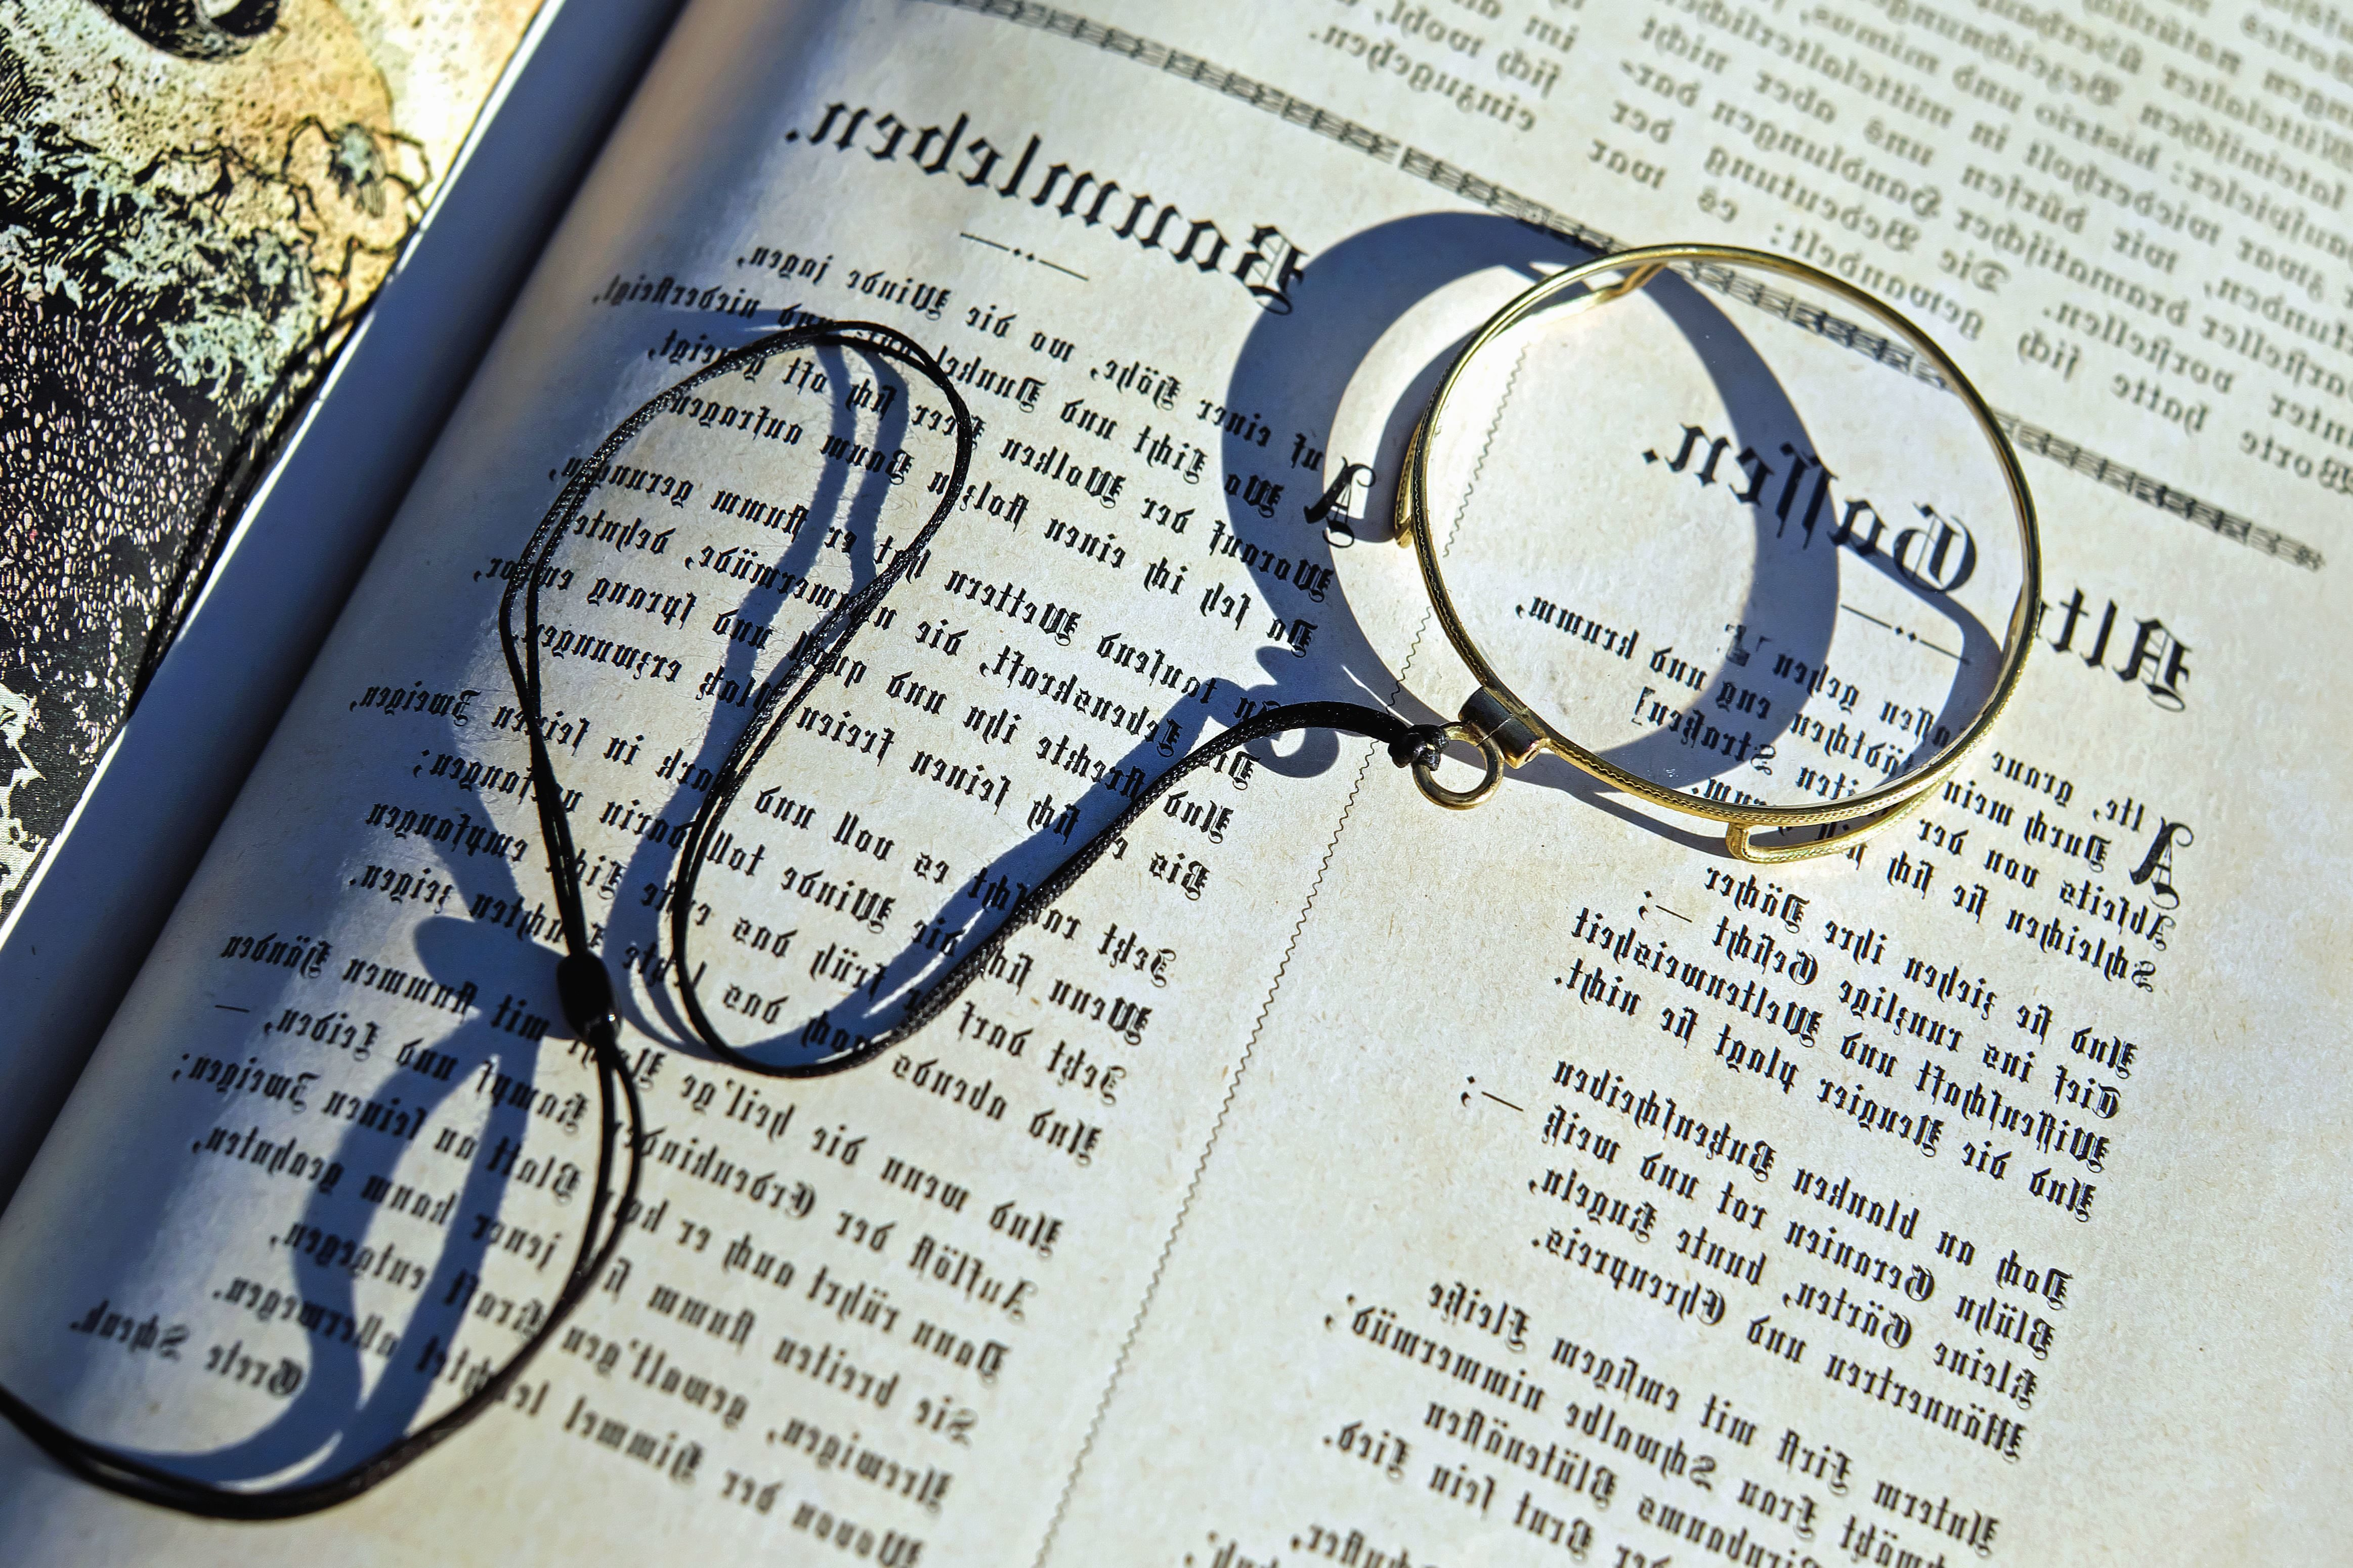 Free picture: magnifying glass, page, paper, research, text, book